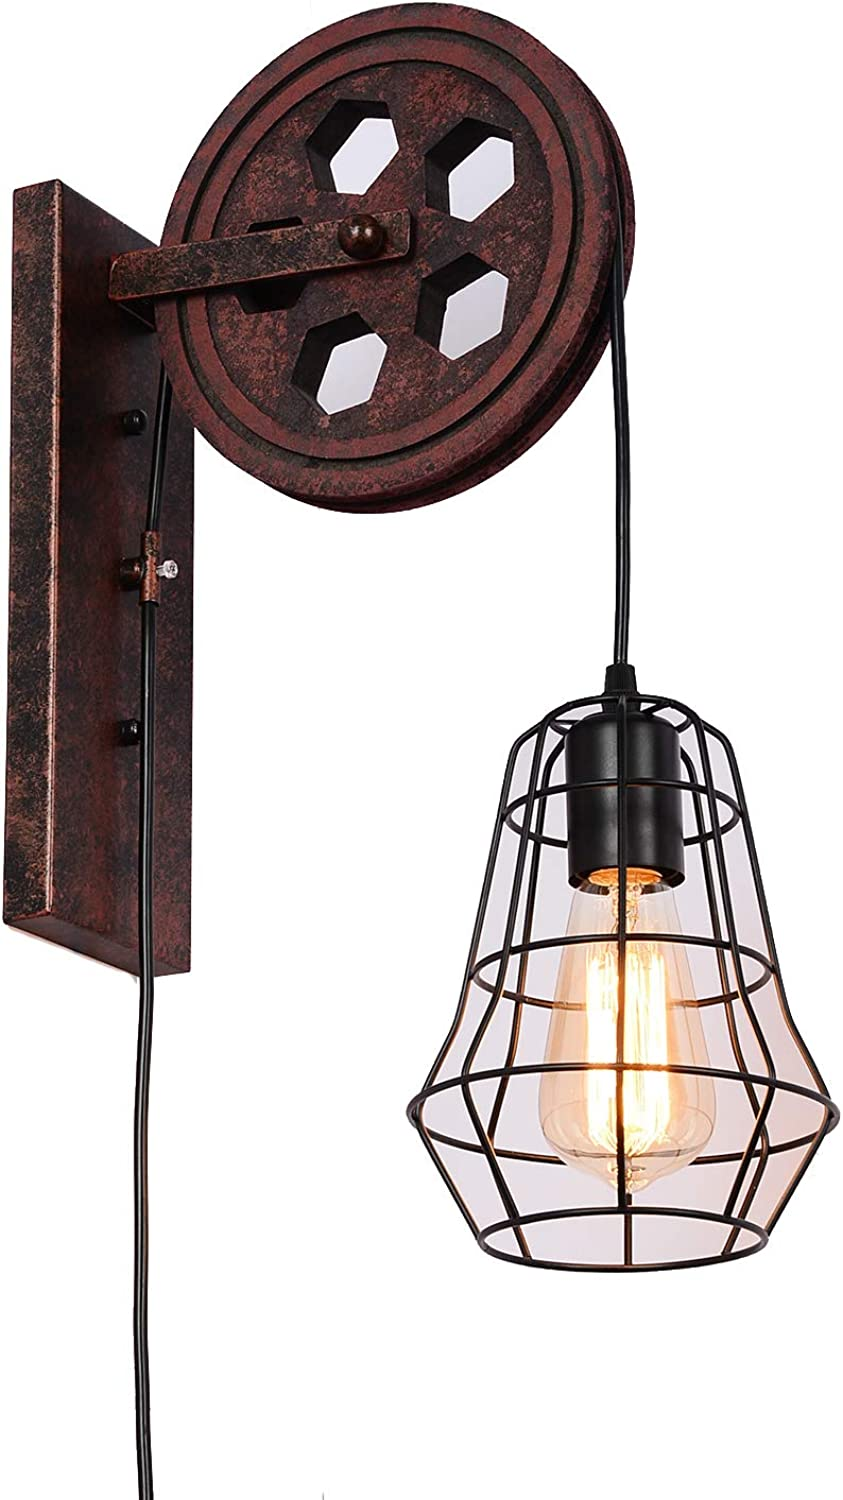 SUNWE Industrial Retro Iron Wall Lamp Creative Personality Lift Pulley Wall Lamp (MK-II)